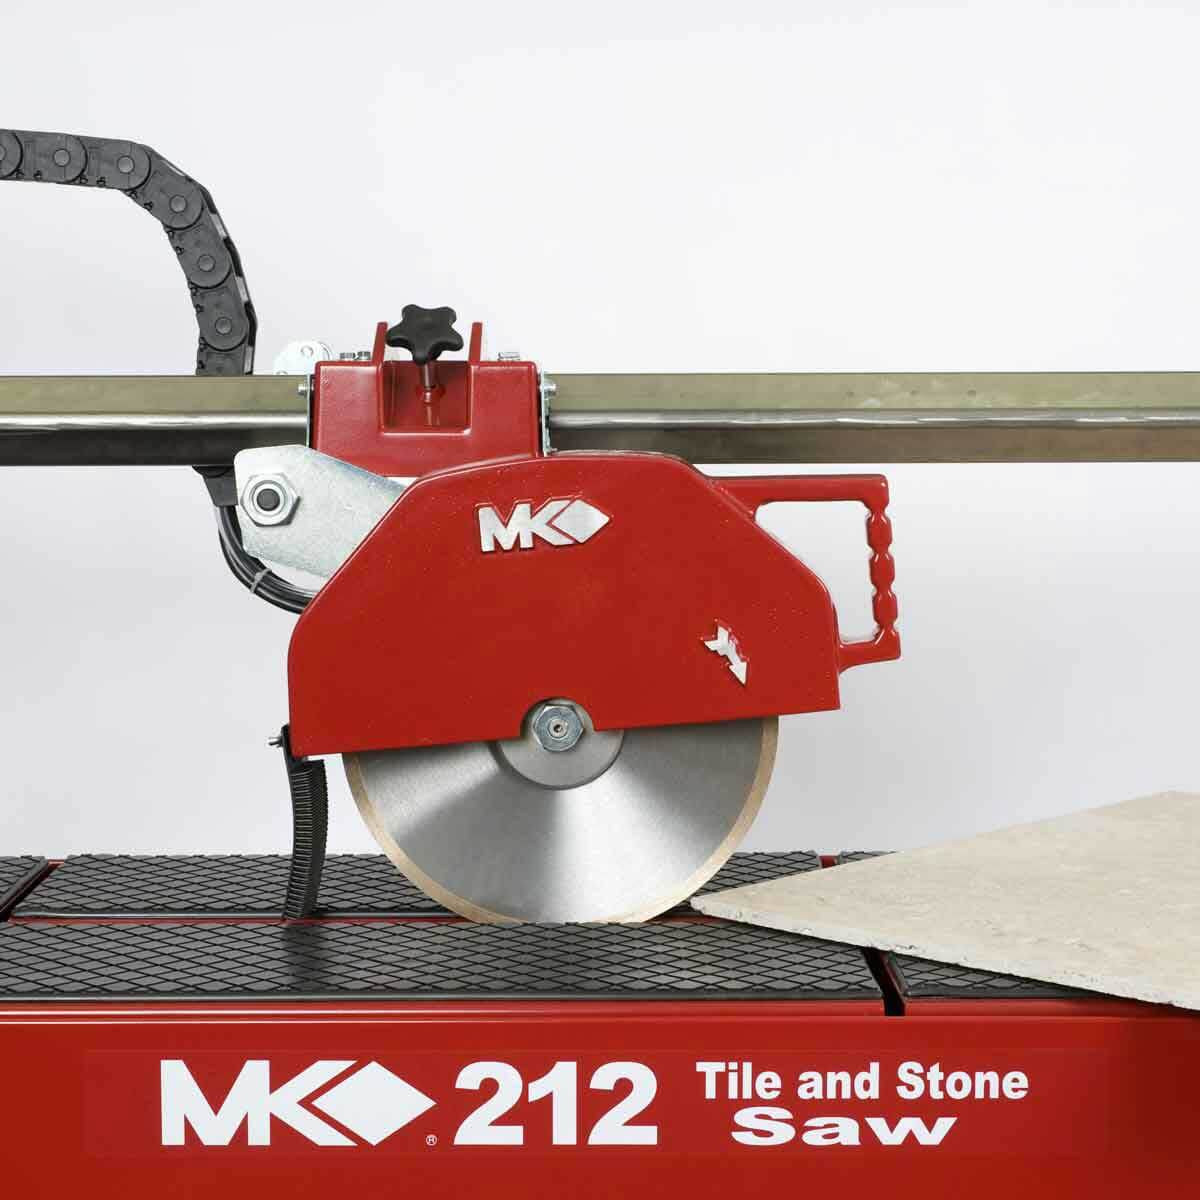 MK 212-4 rail saw cutting tile at a 45 degree angle